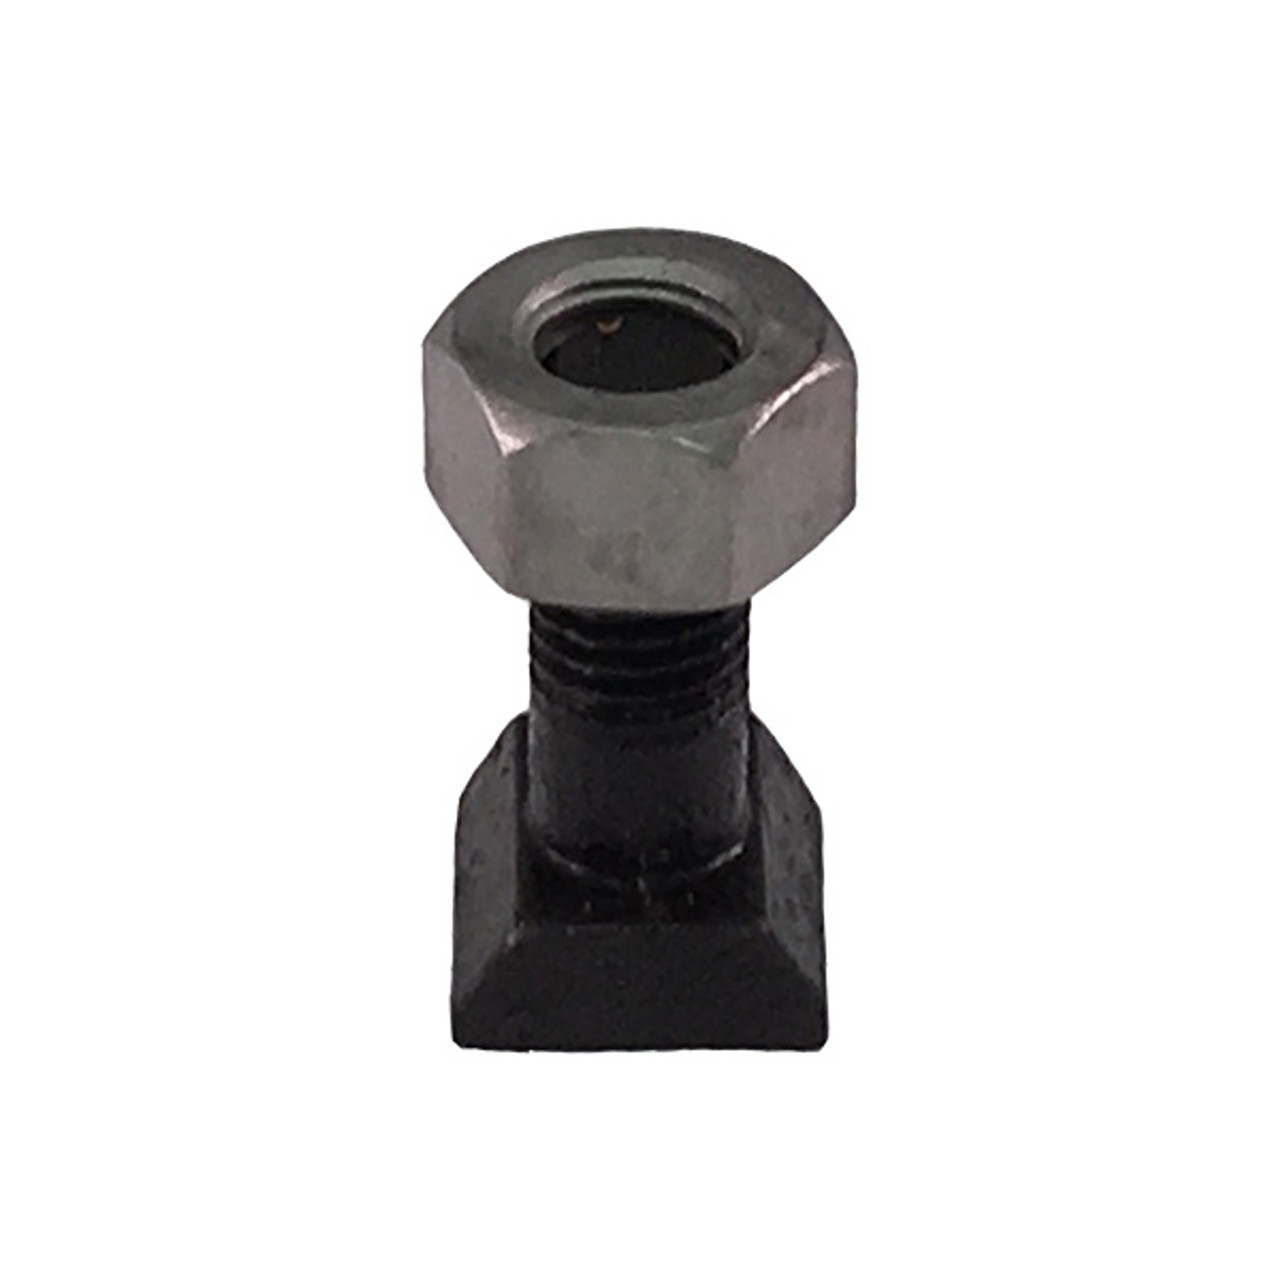 Dovetail Screw .62-11 x 2.06 (37580)